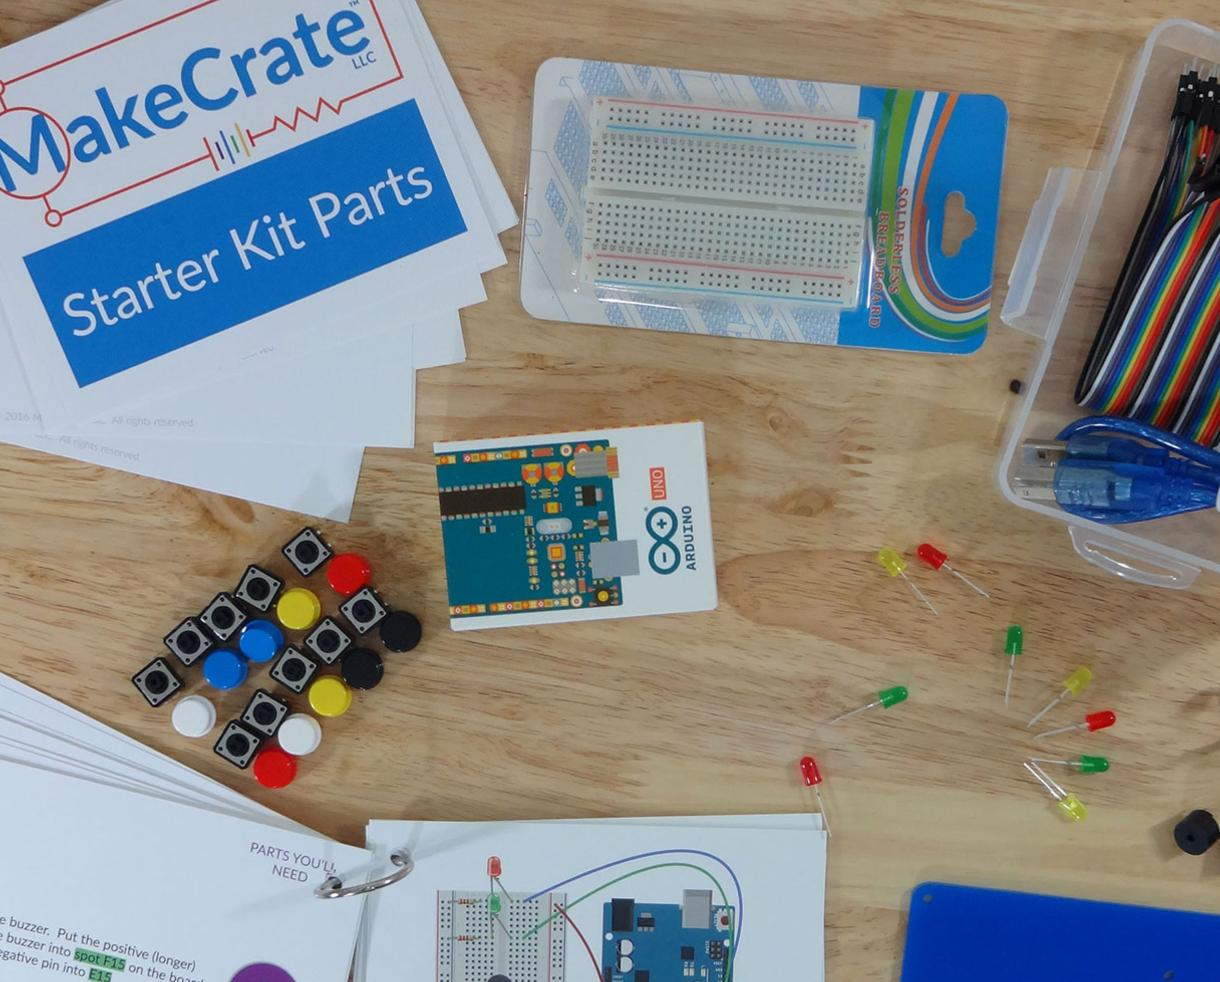 30% Off ALL MakeCrate Electronics and Coding Arduino Kits - Includes Subscription and Single Shipment Kits! Perfect Holiday Gift!